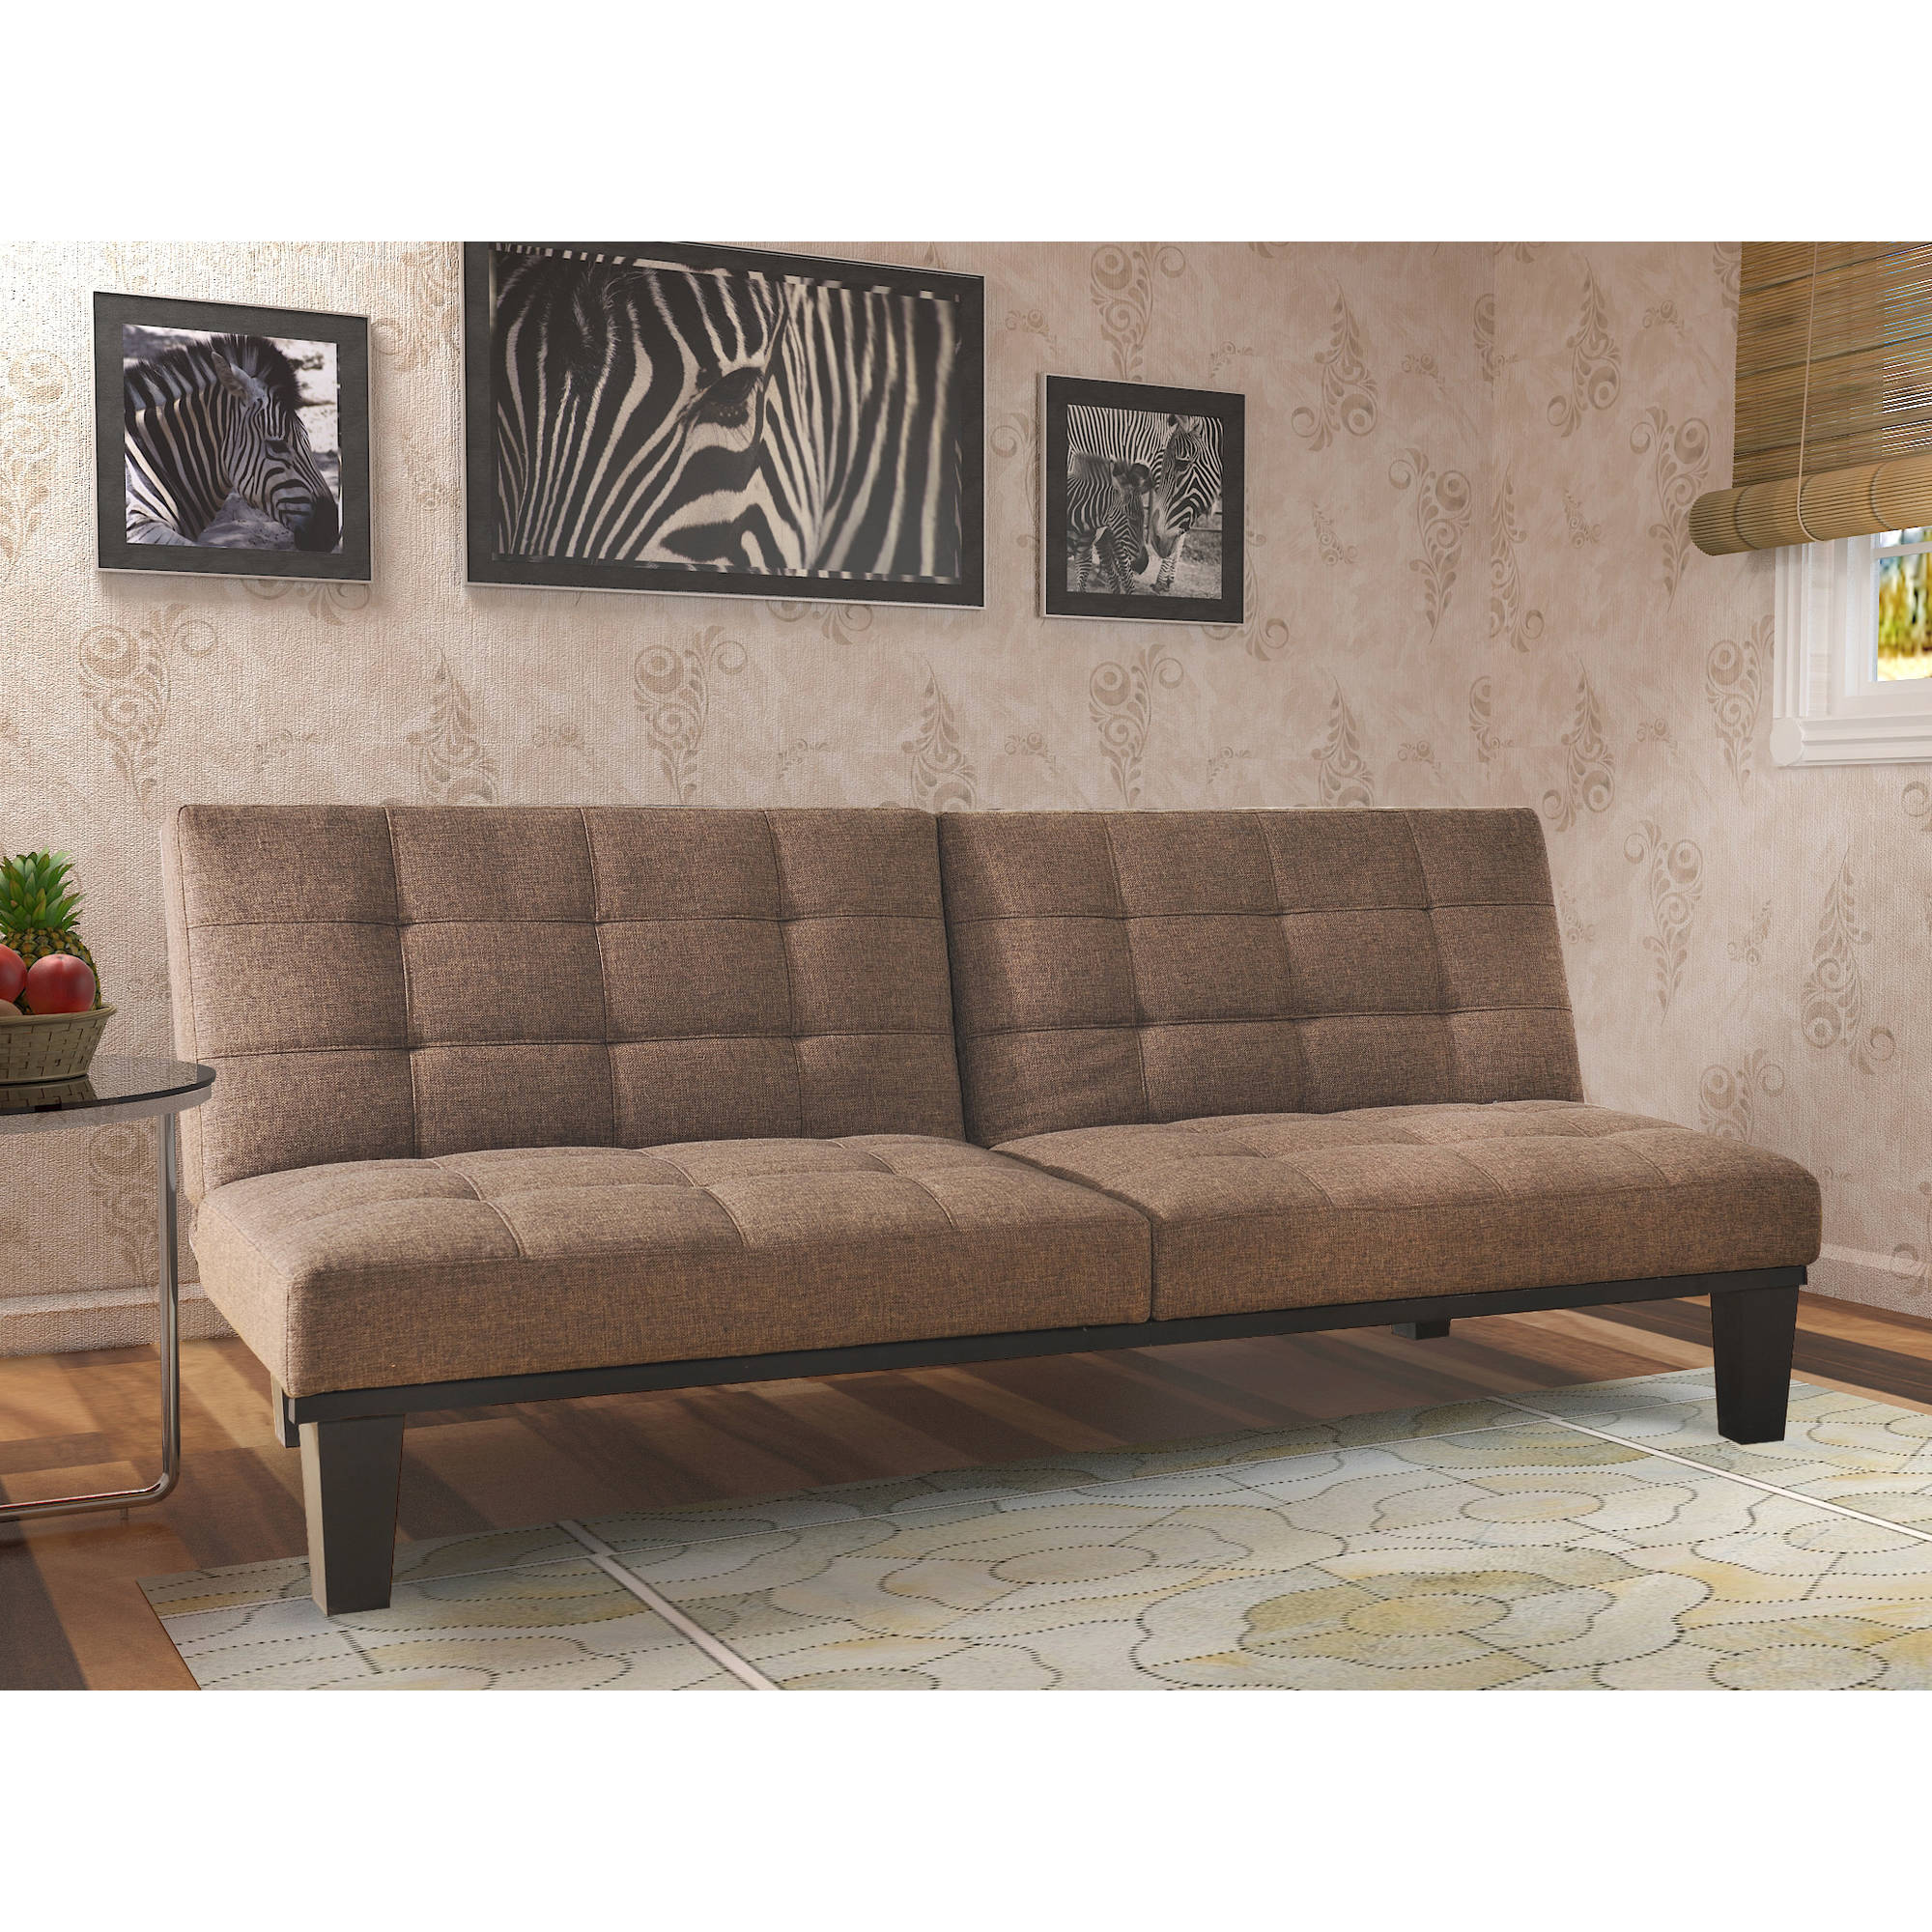 mainstays sofa sleeper with memory foam covers for pets target tweed futon multiple colors ebay